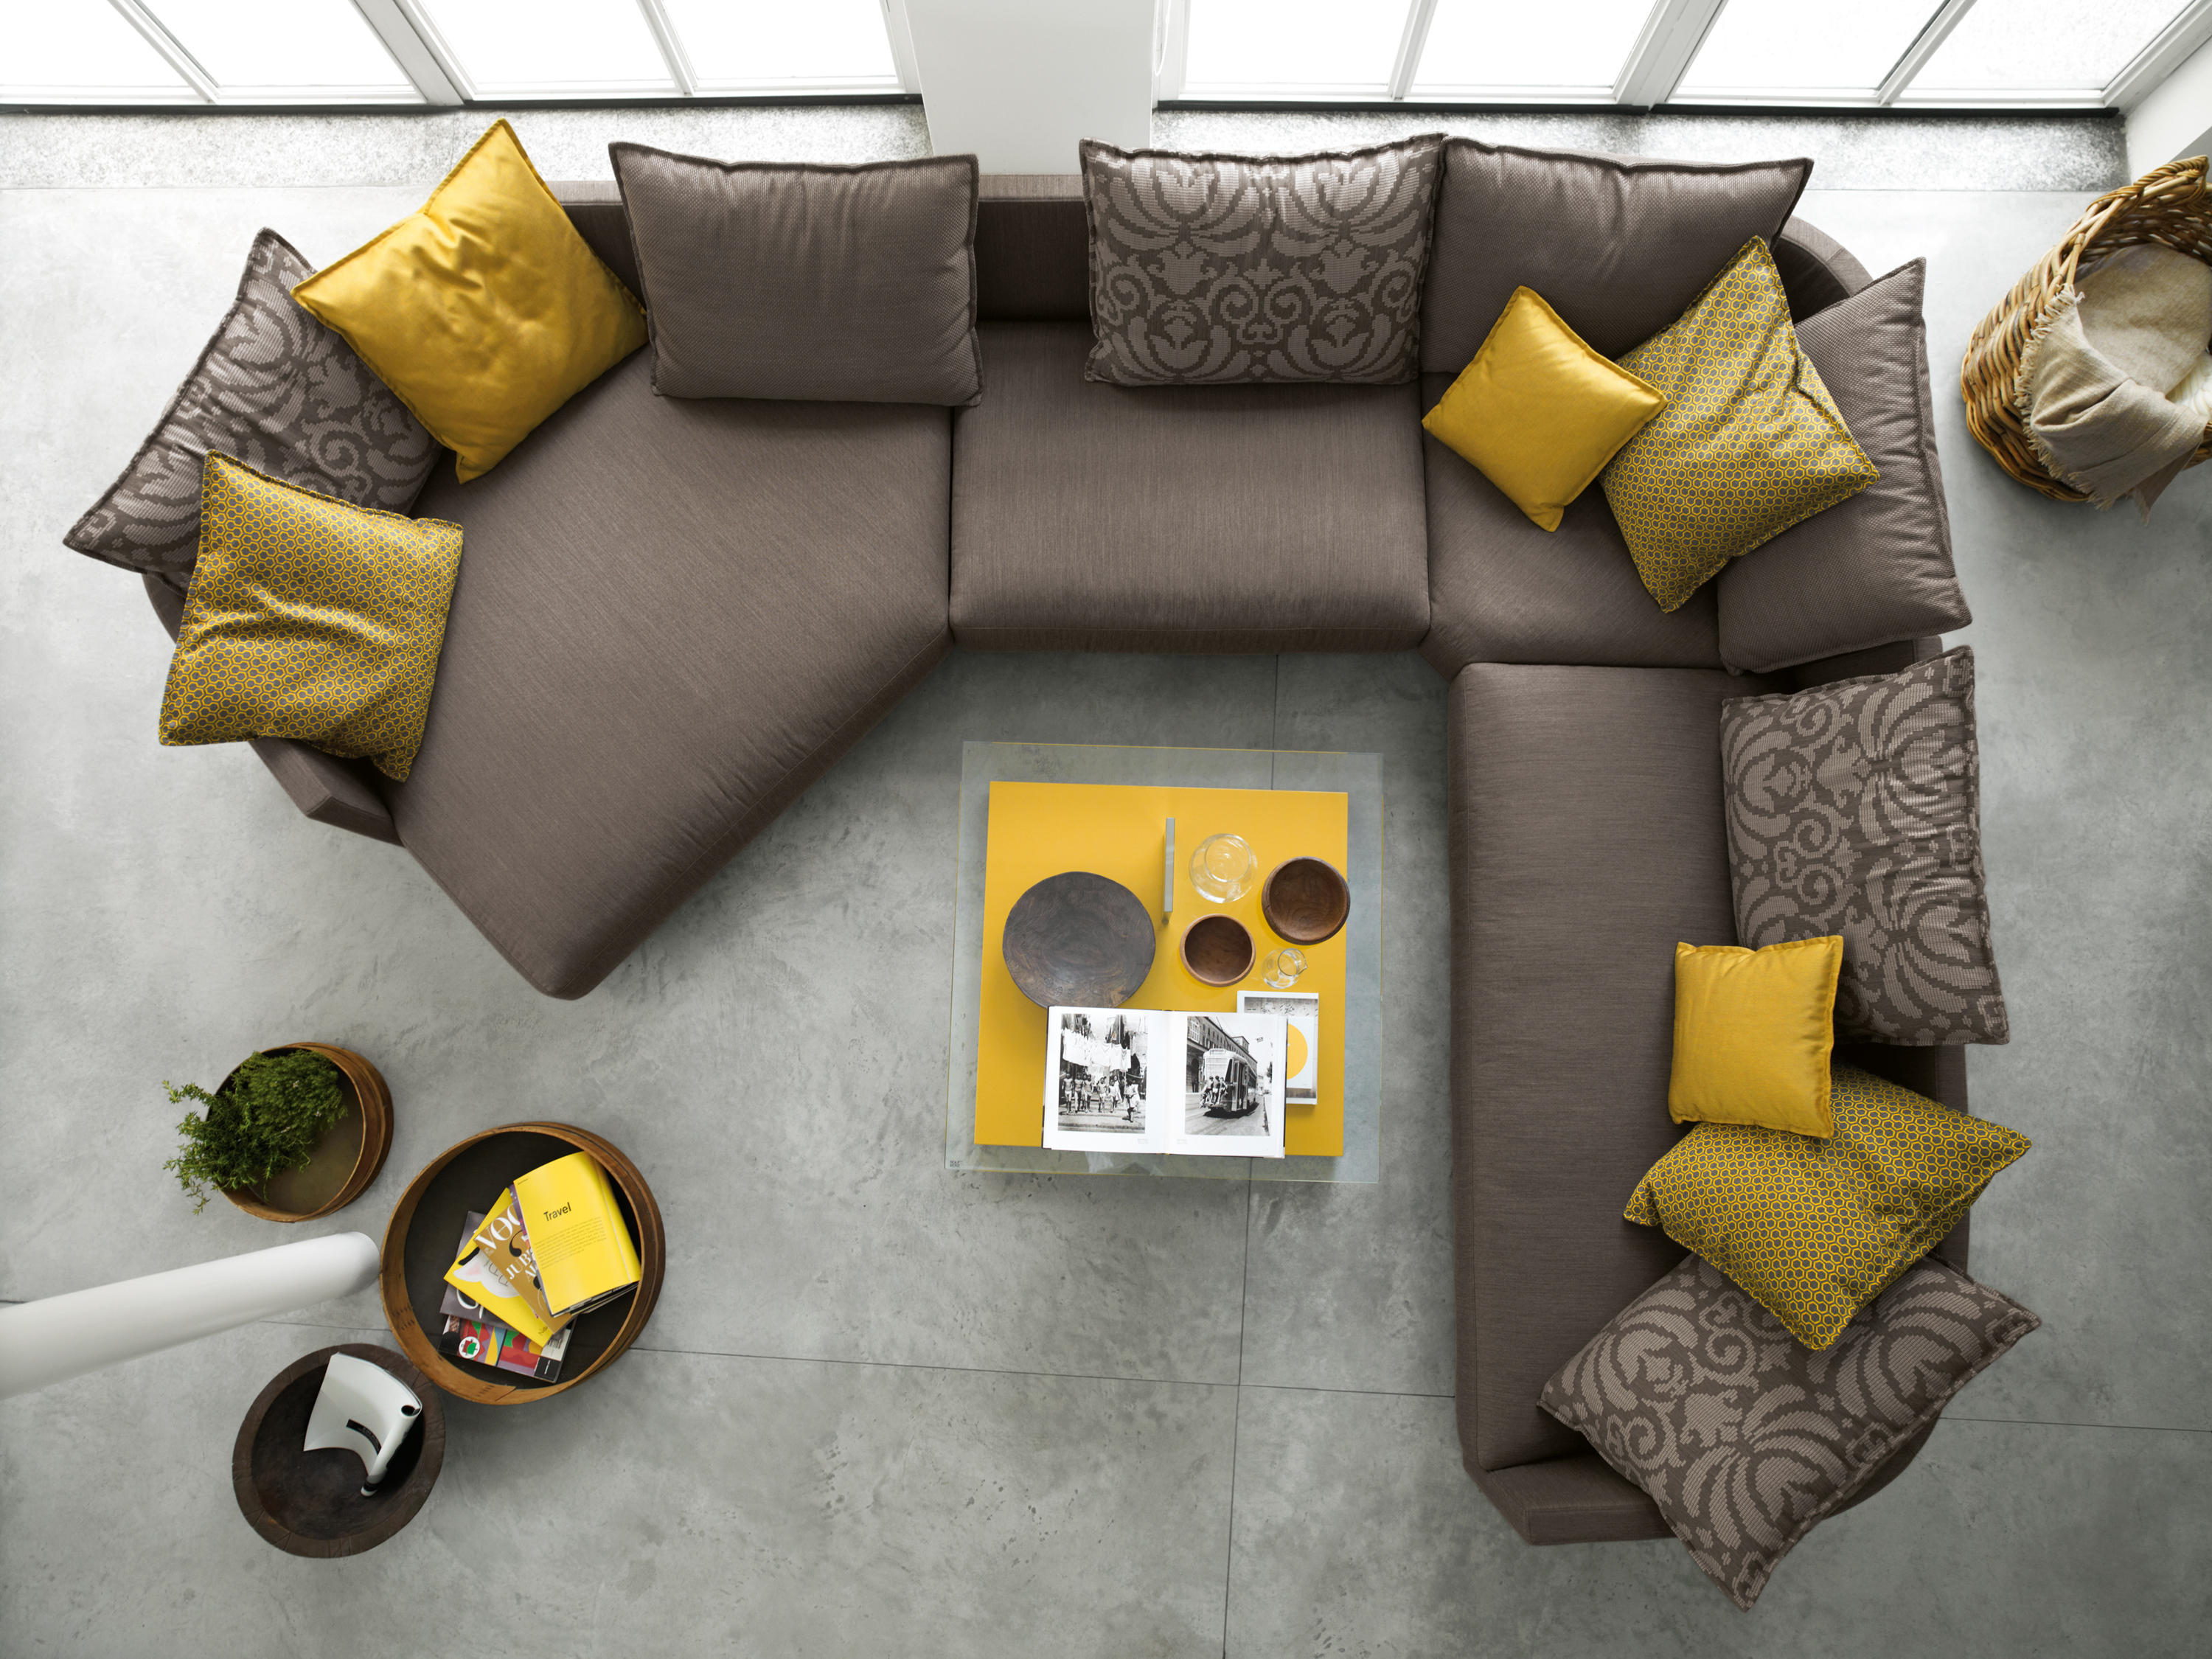 Sofa Halbrund Rolf Benz Rolf Benz Onda Lounge Chairs From Rolf Benz Architonic